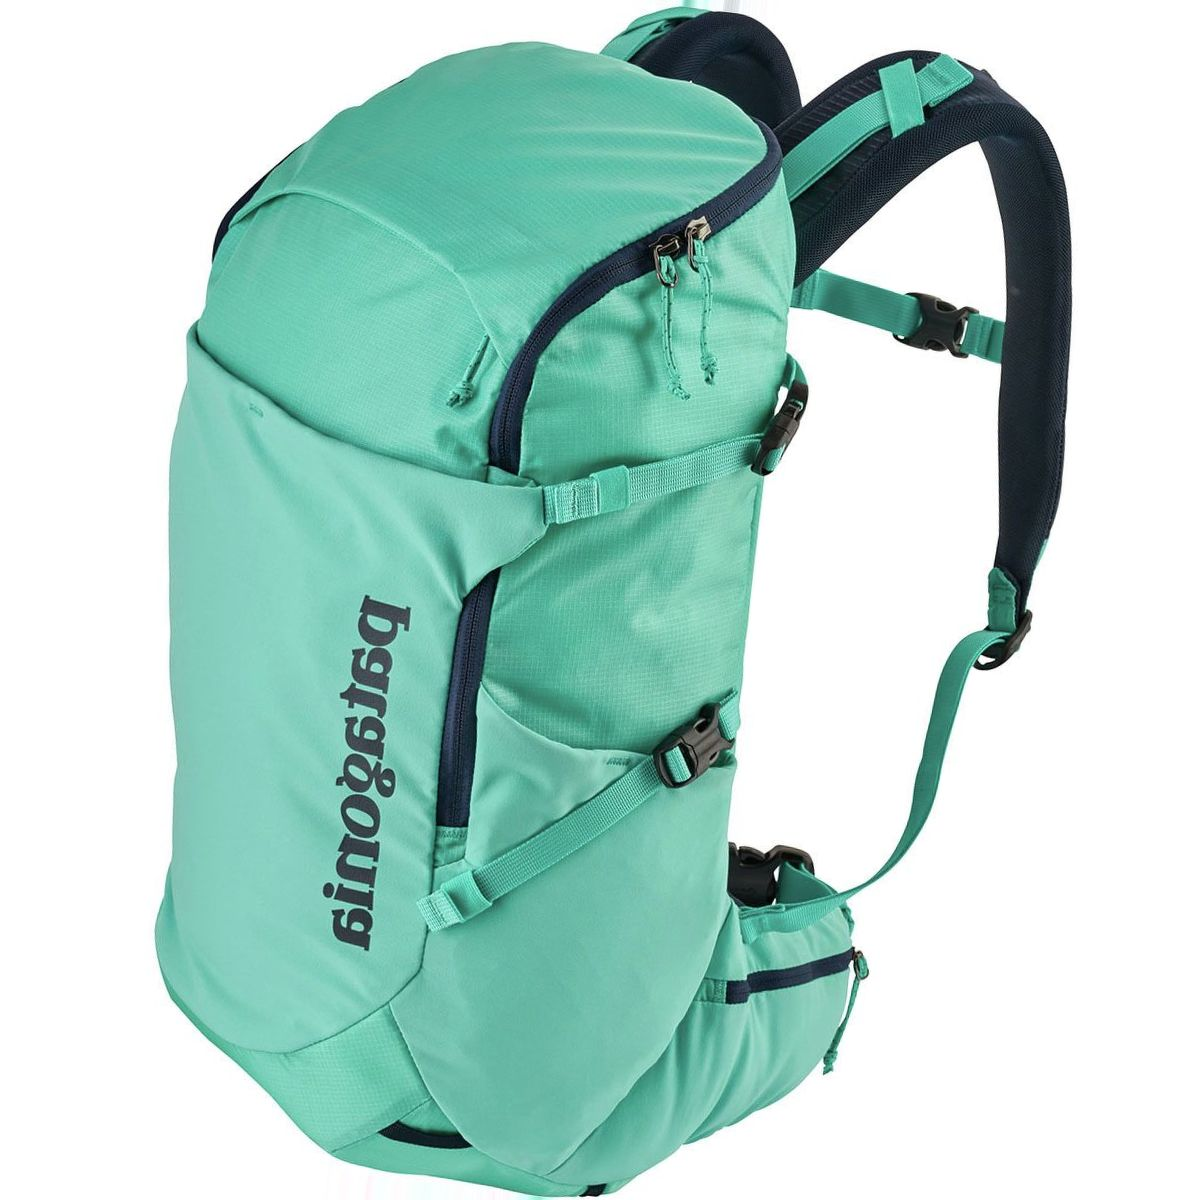 Patagonia Nine Trails 26L Backpack - Women's